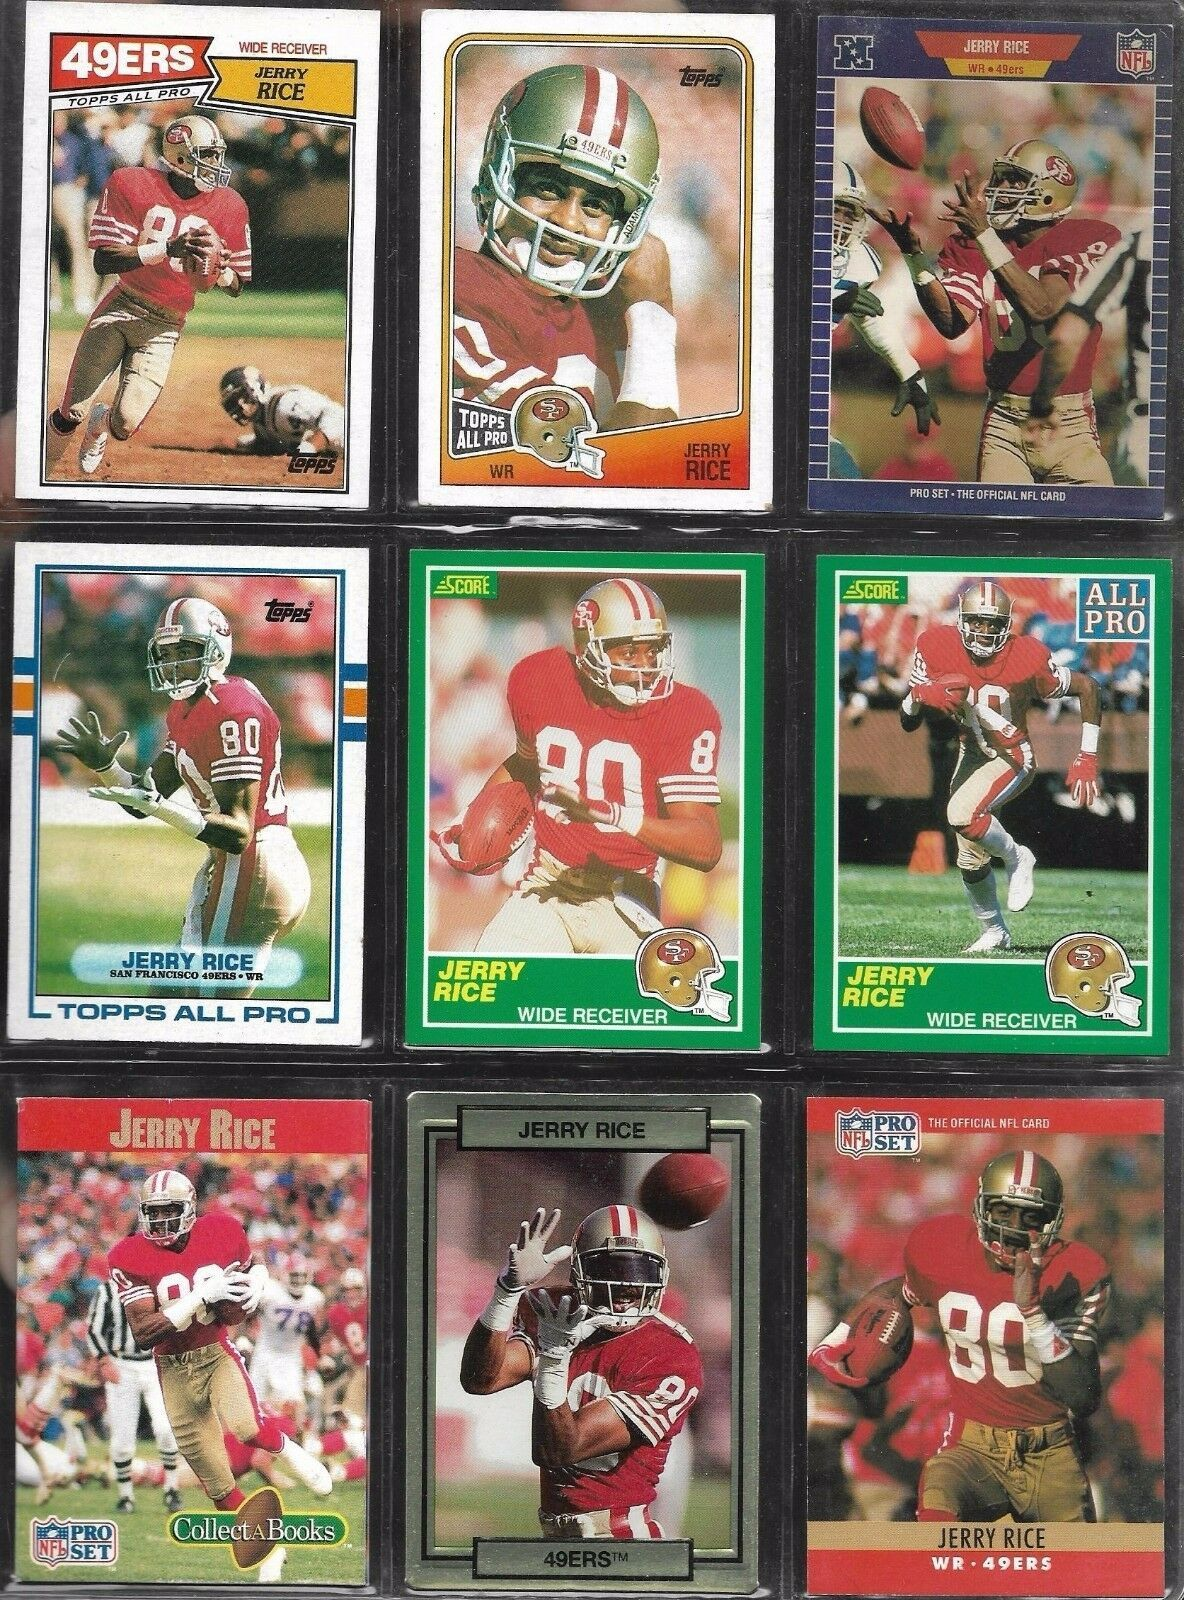 Jerry Rice San Francisco 49ers 1987-90 Topps Score NFL Pro Set Football Card Lot